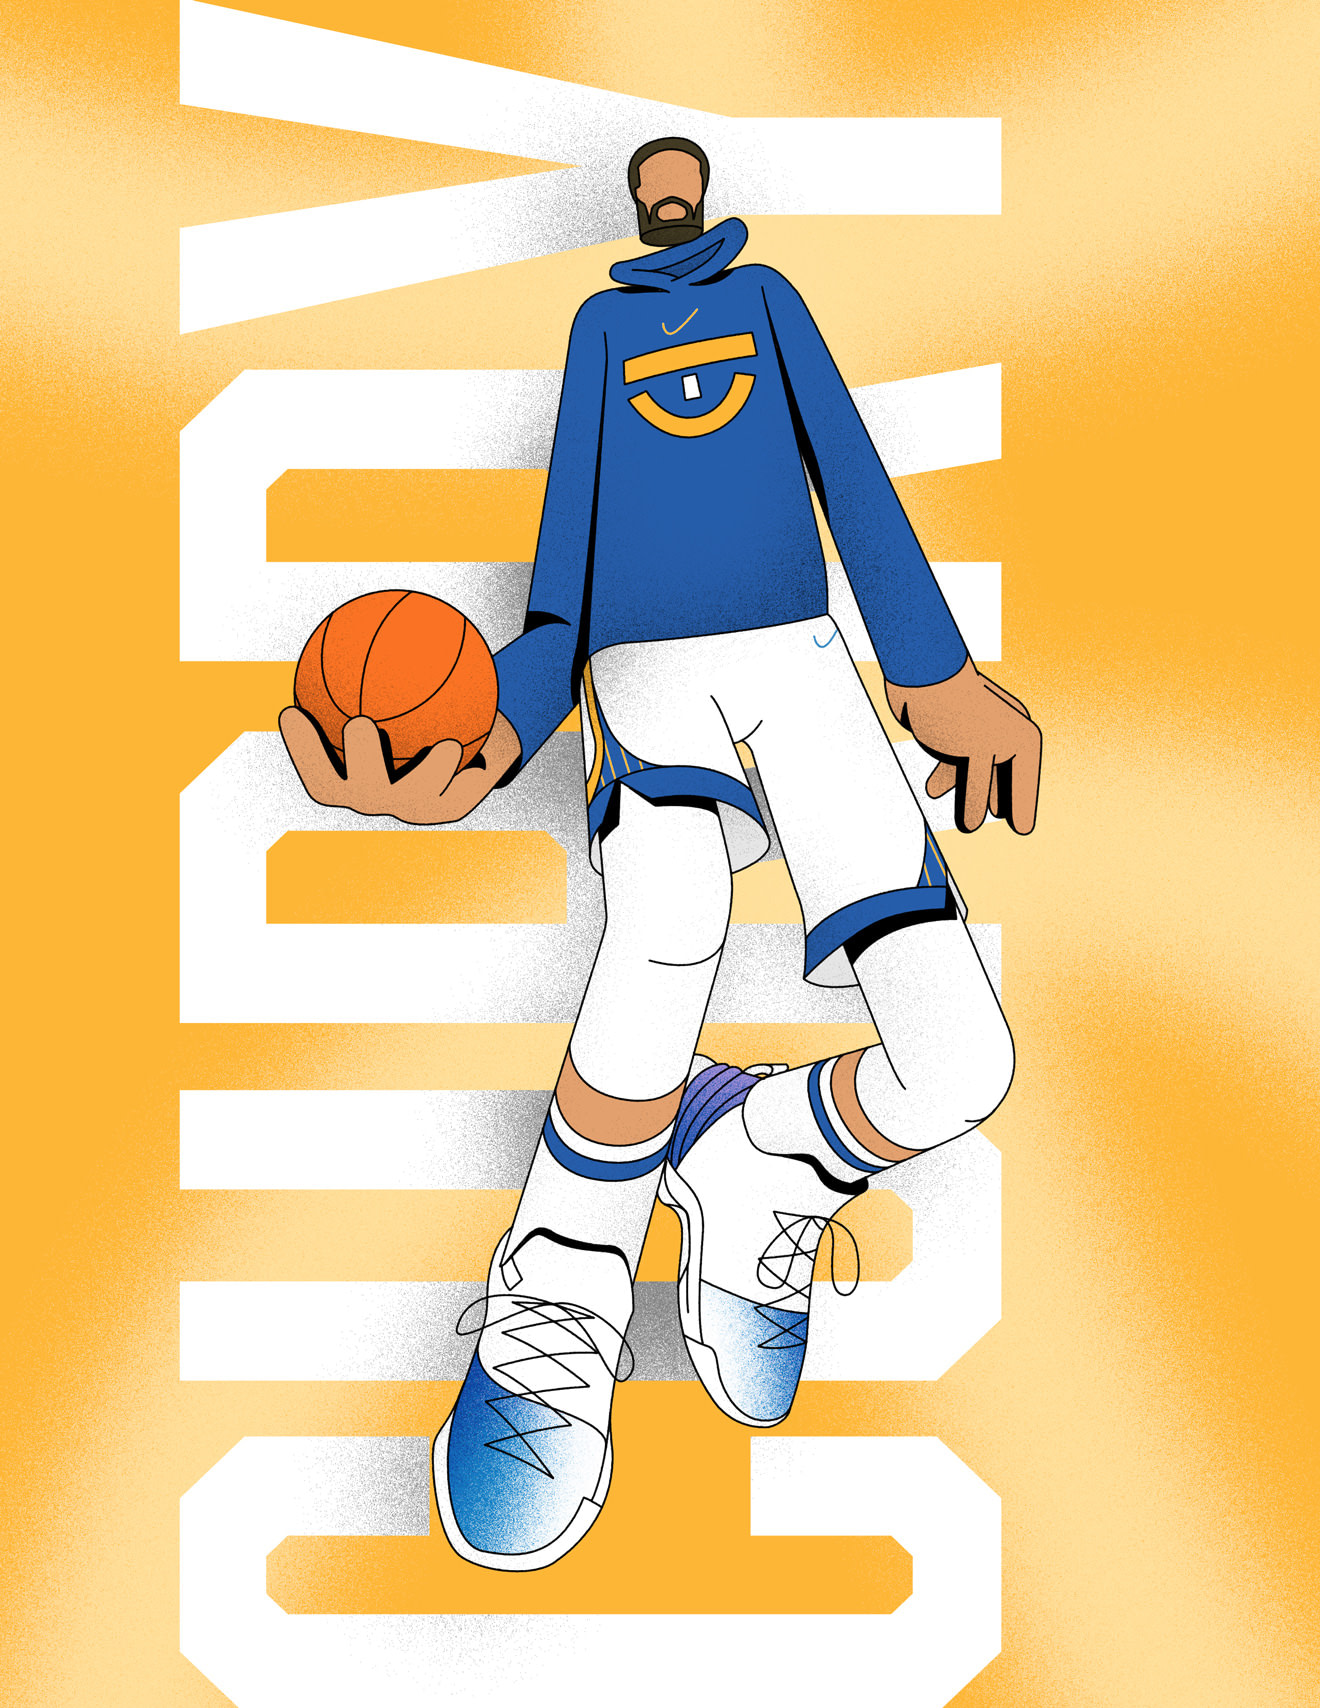 Illustration of basketball player, Steph Curry, mid-dunk